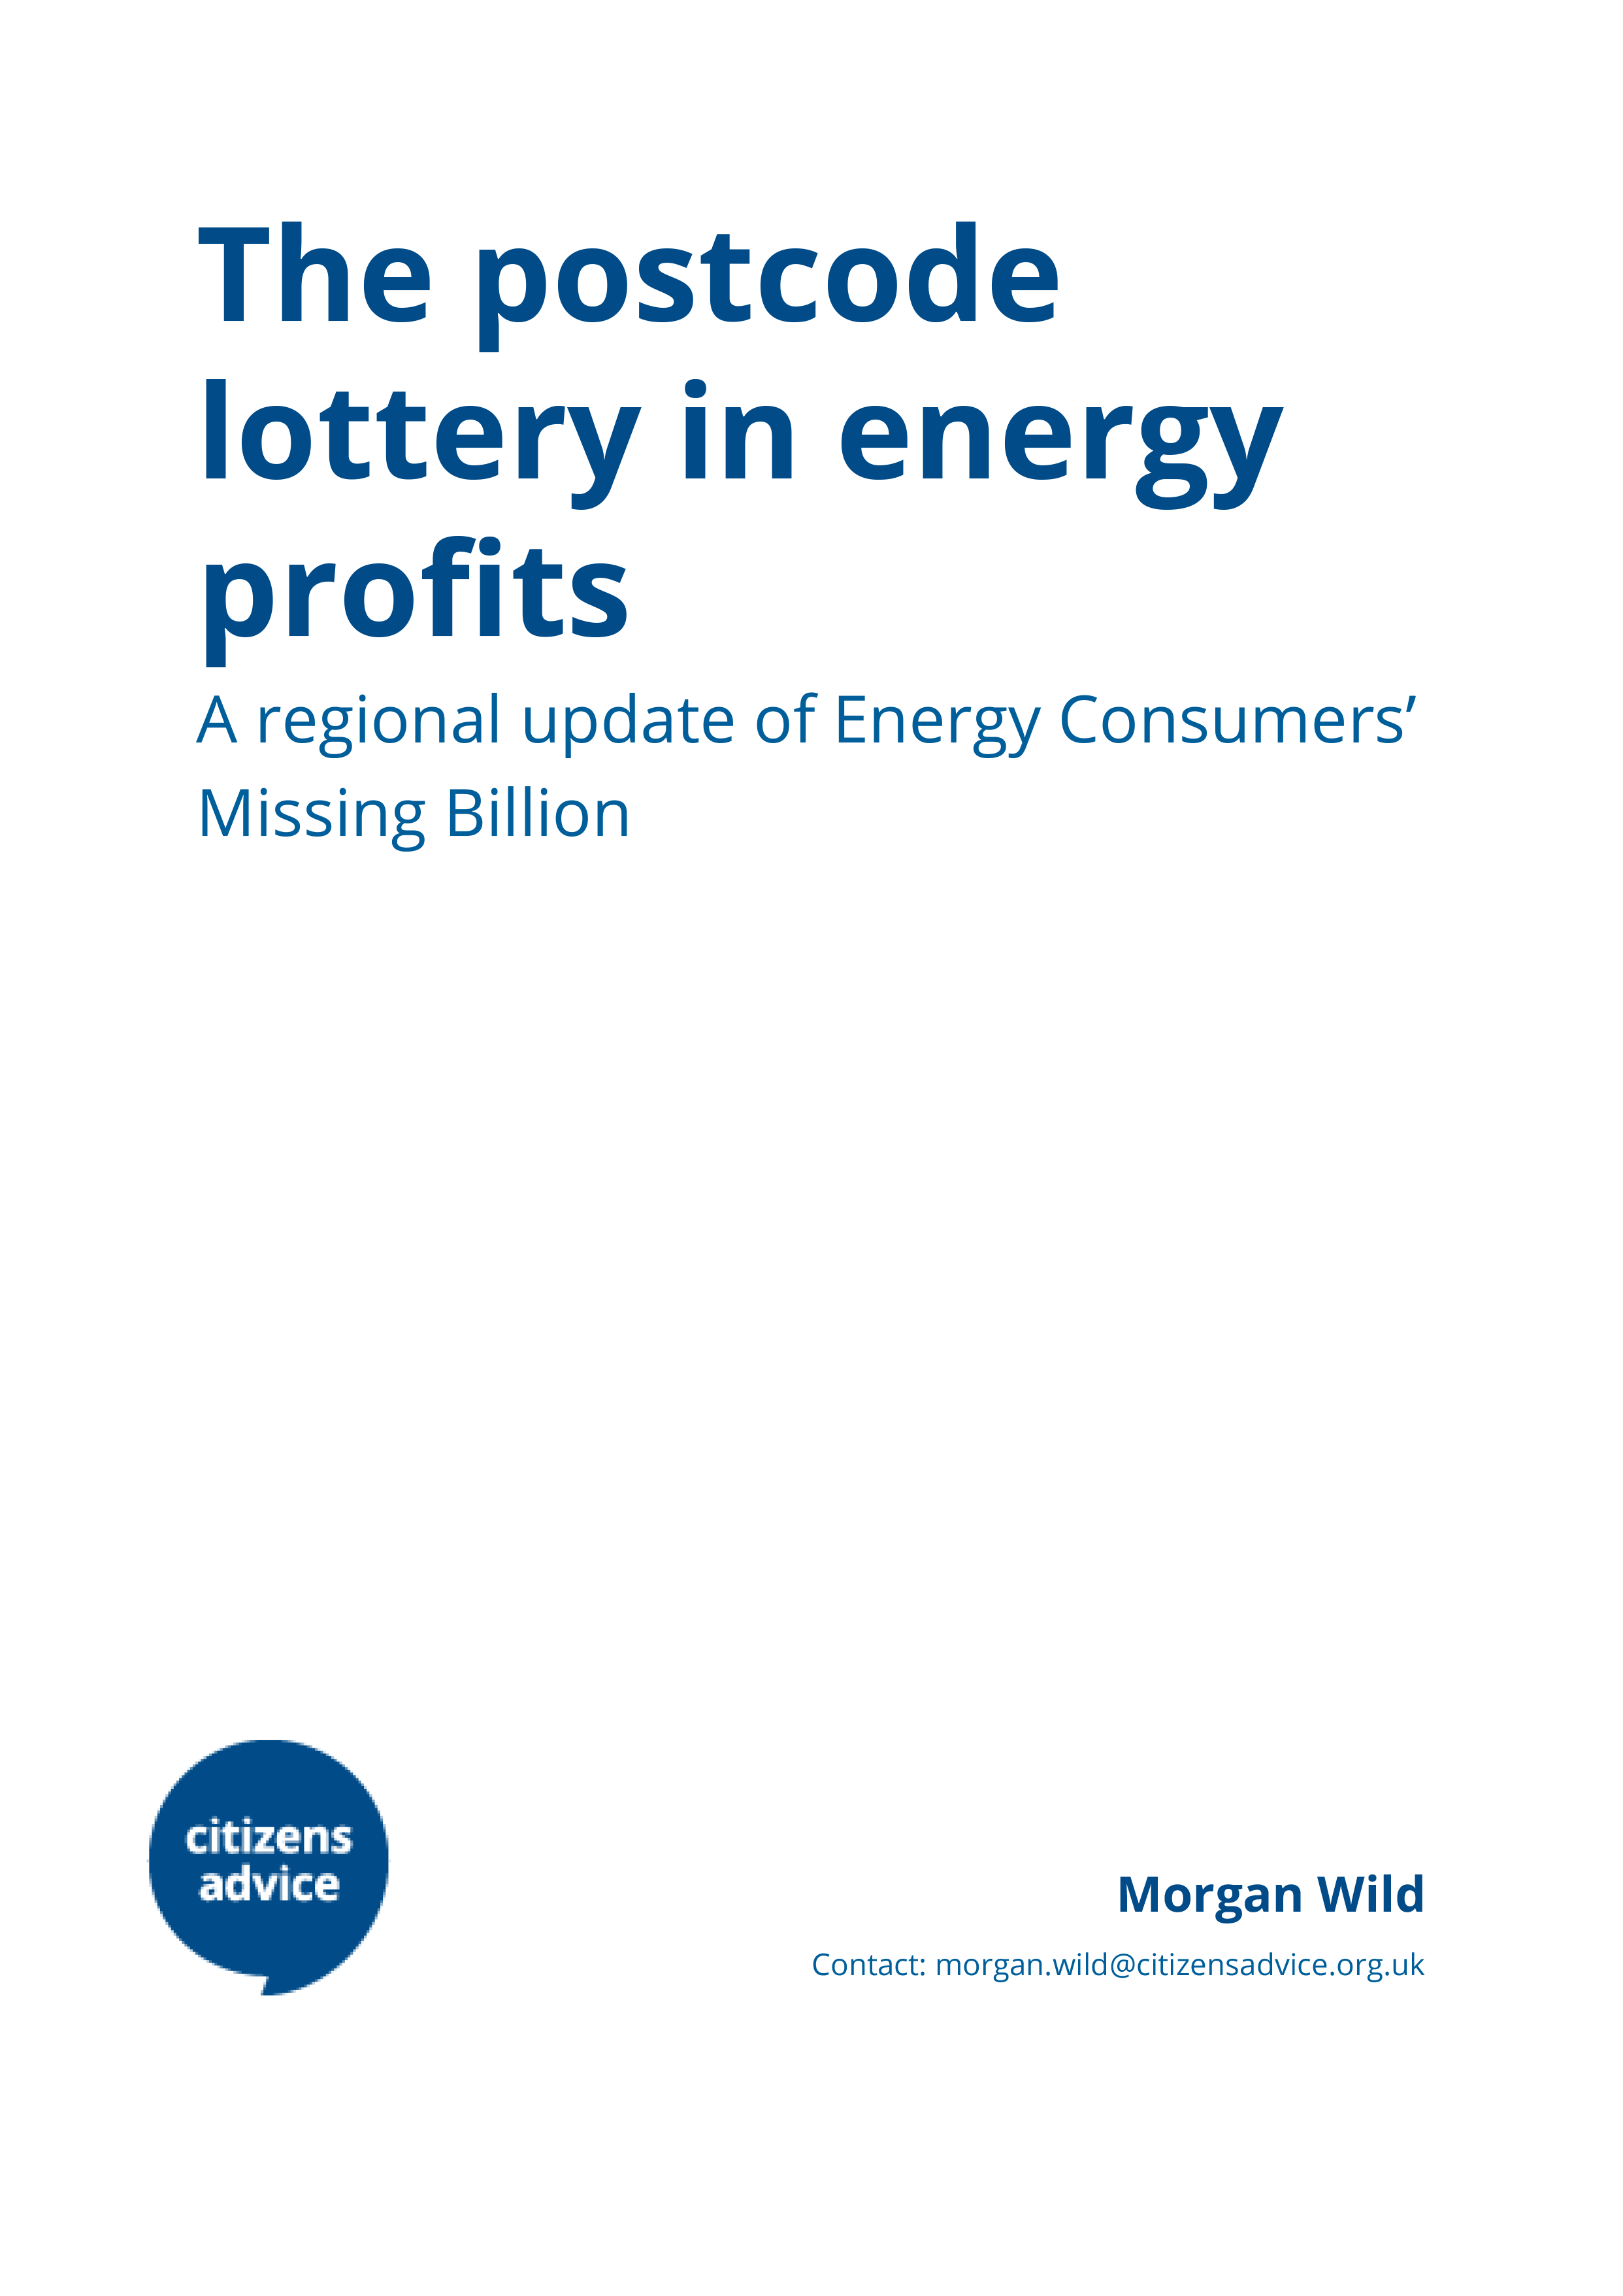 The postcode lottery in energy profits -  a regional update of Energy Consumers' Missing Billions